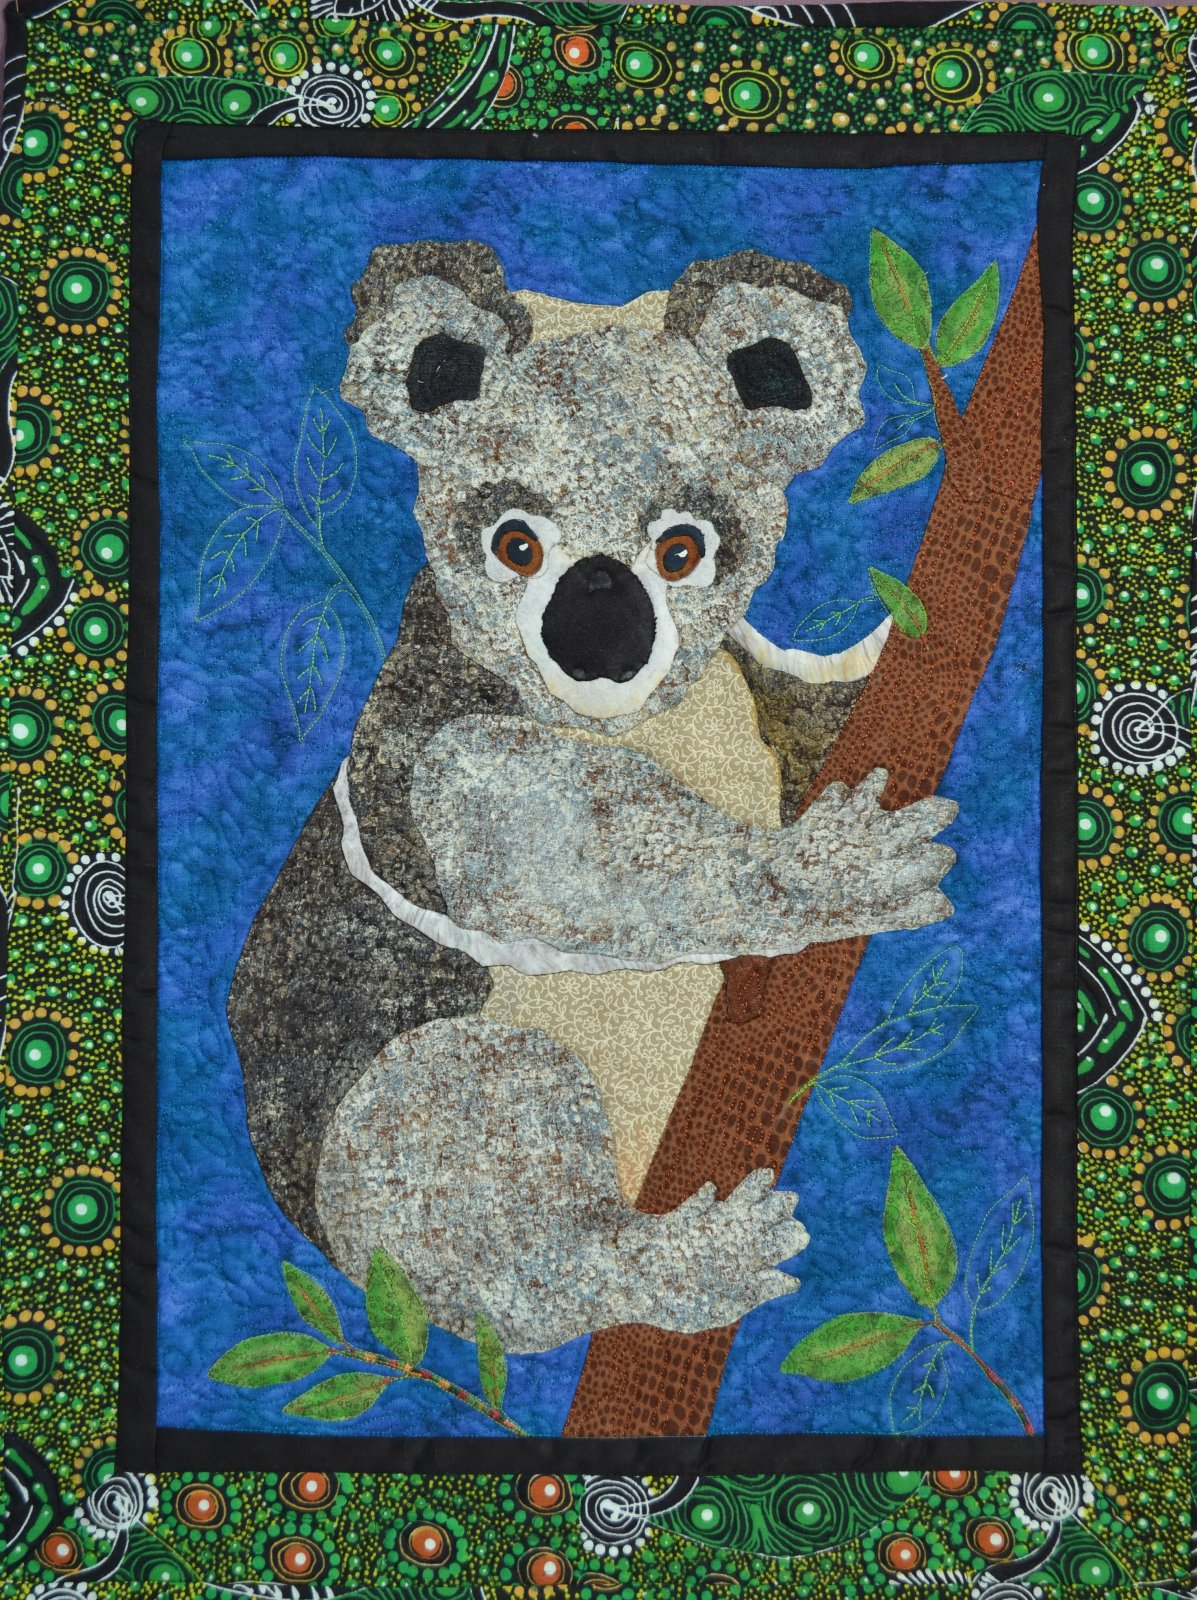 Koala applique pattern